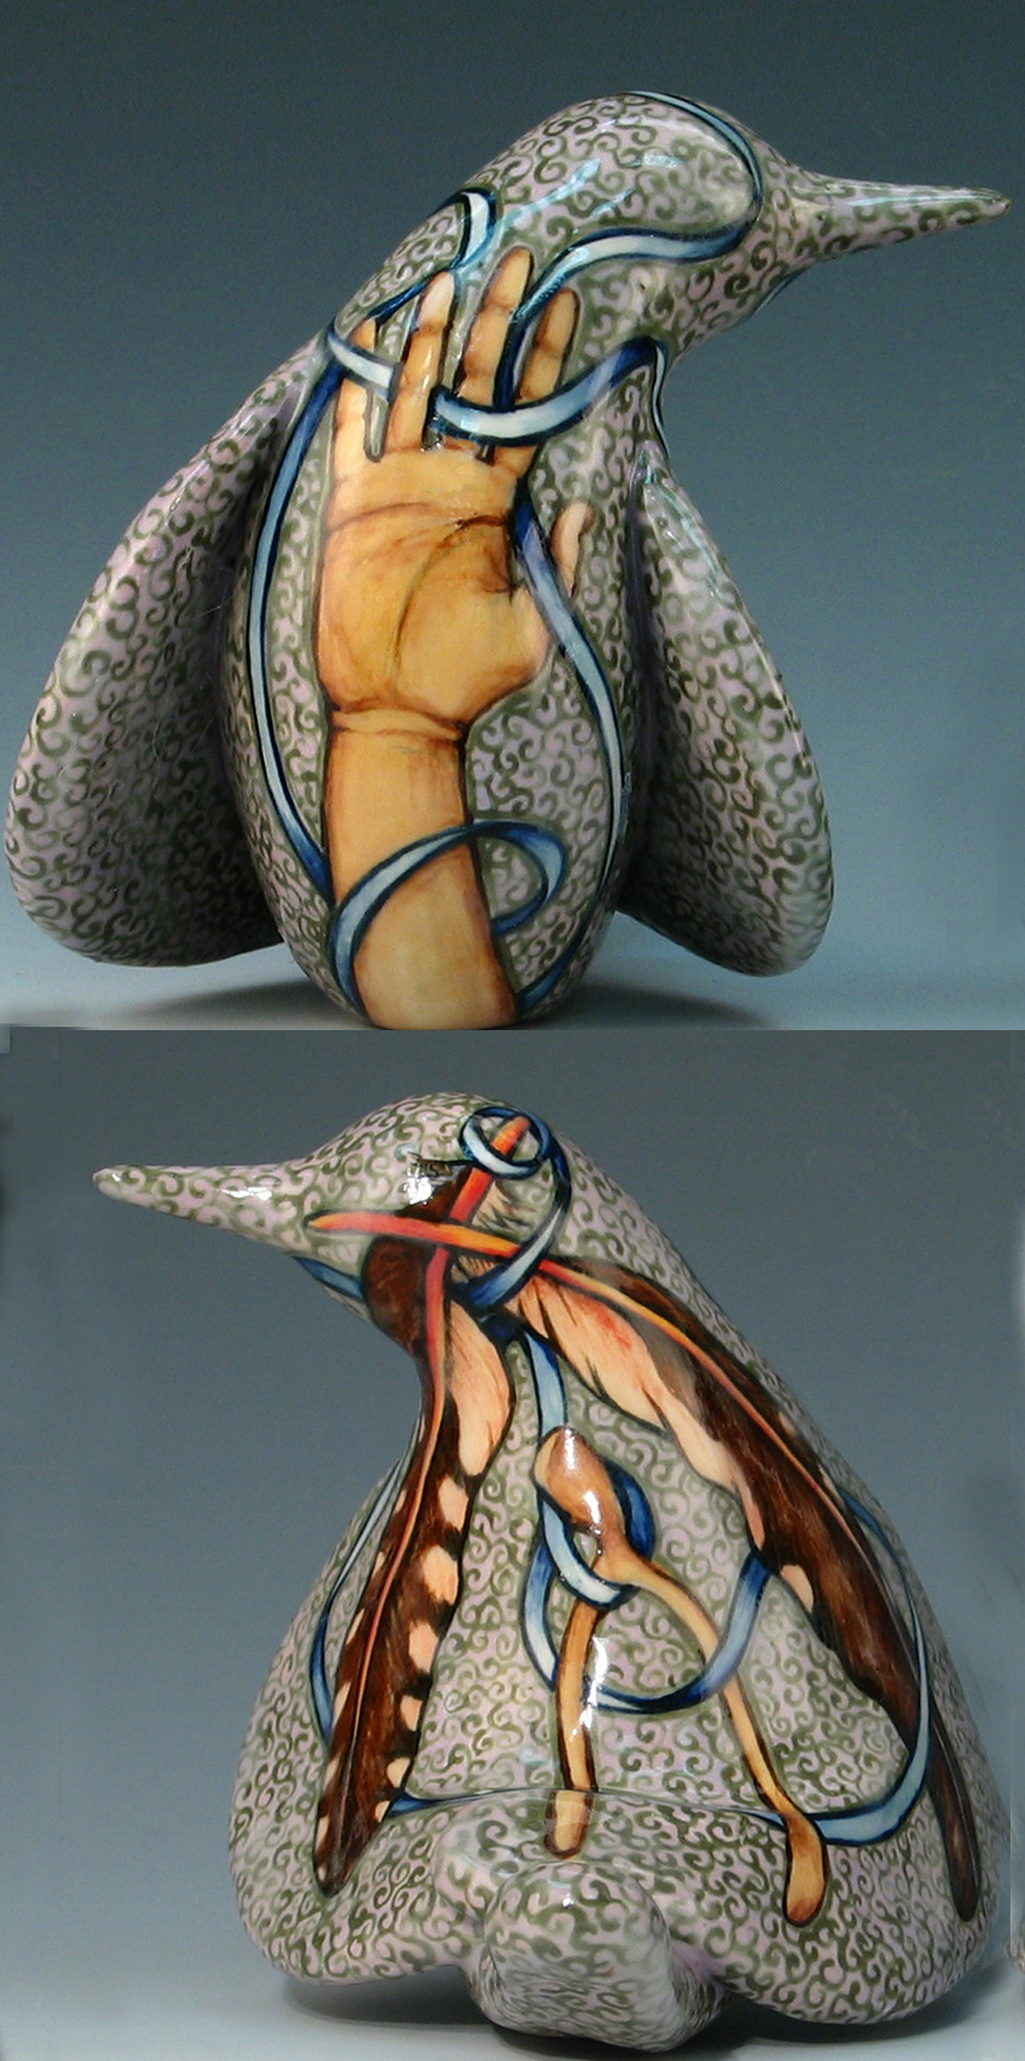 cathy weber - art - painting - woman - montana - ceramic - porcelain - bird - narrative - clay - glazed